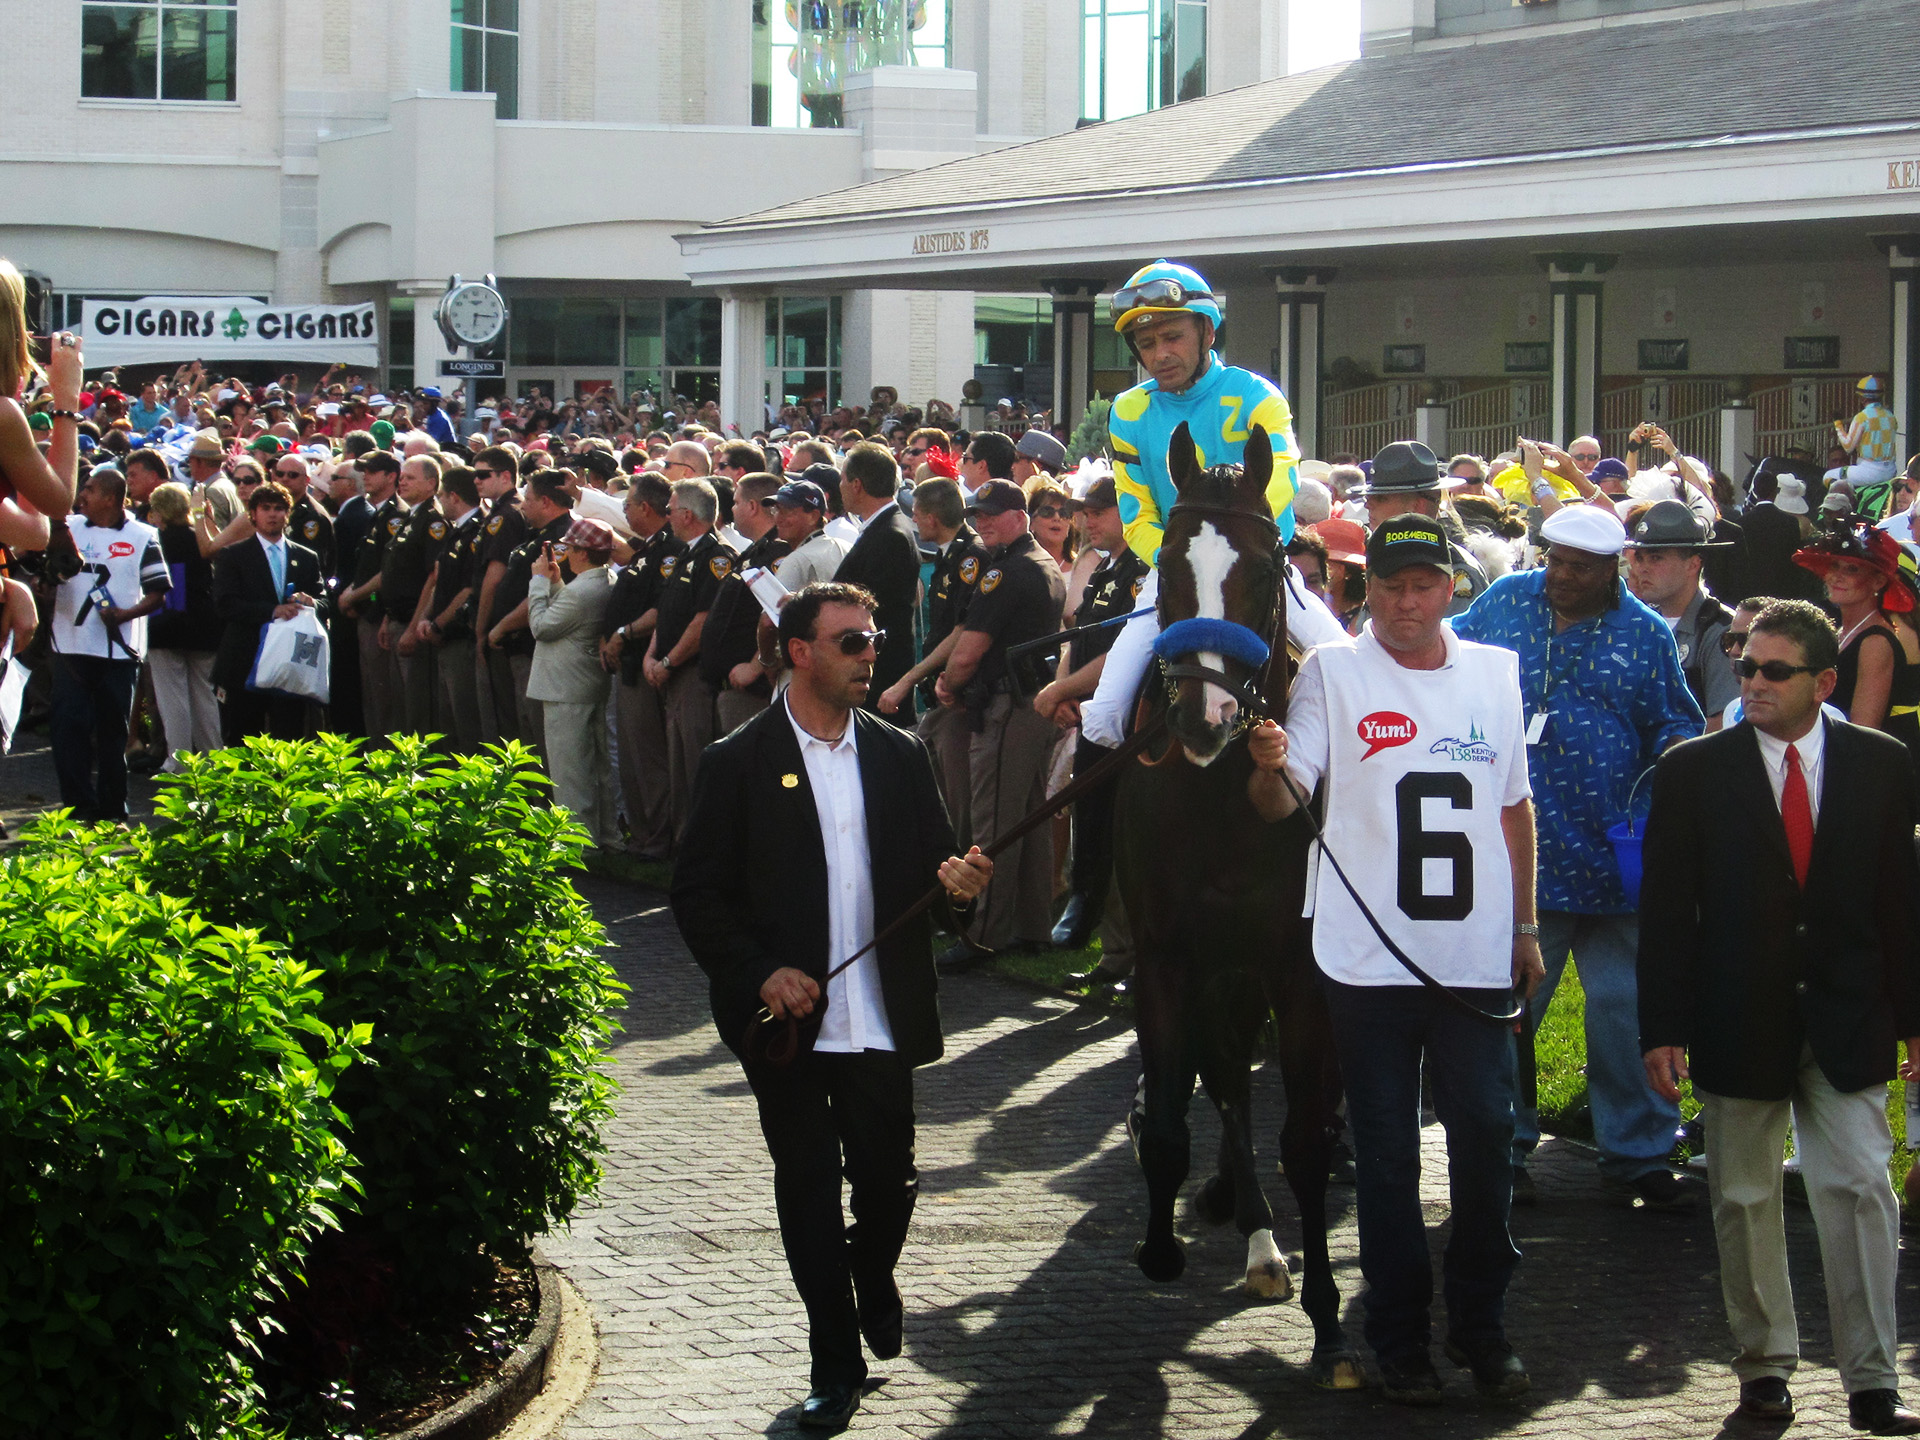 Bodemeister, Mike Smith and their team heading to the starting gate